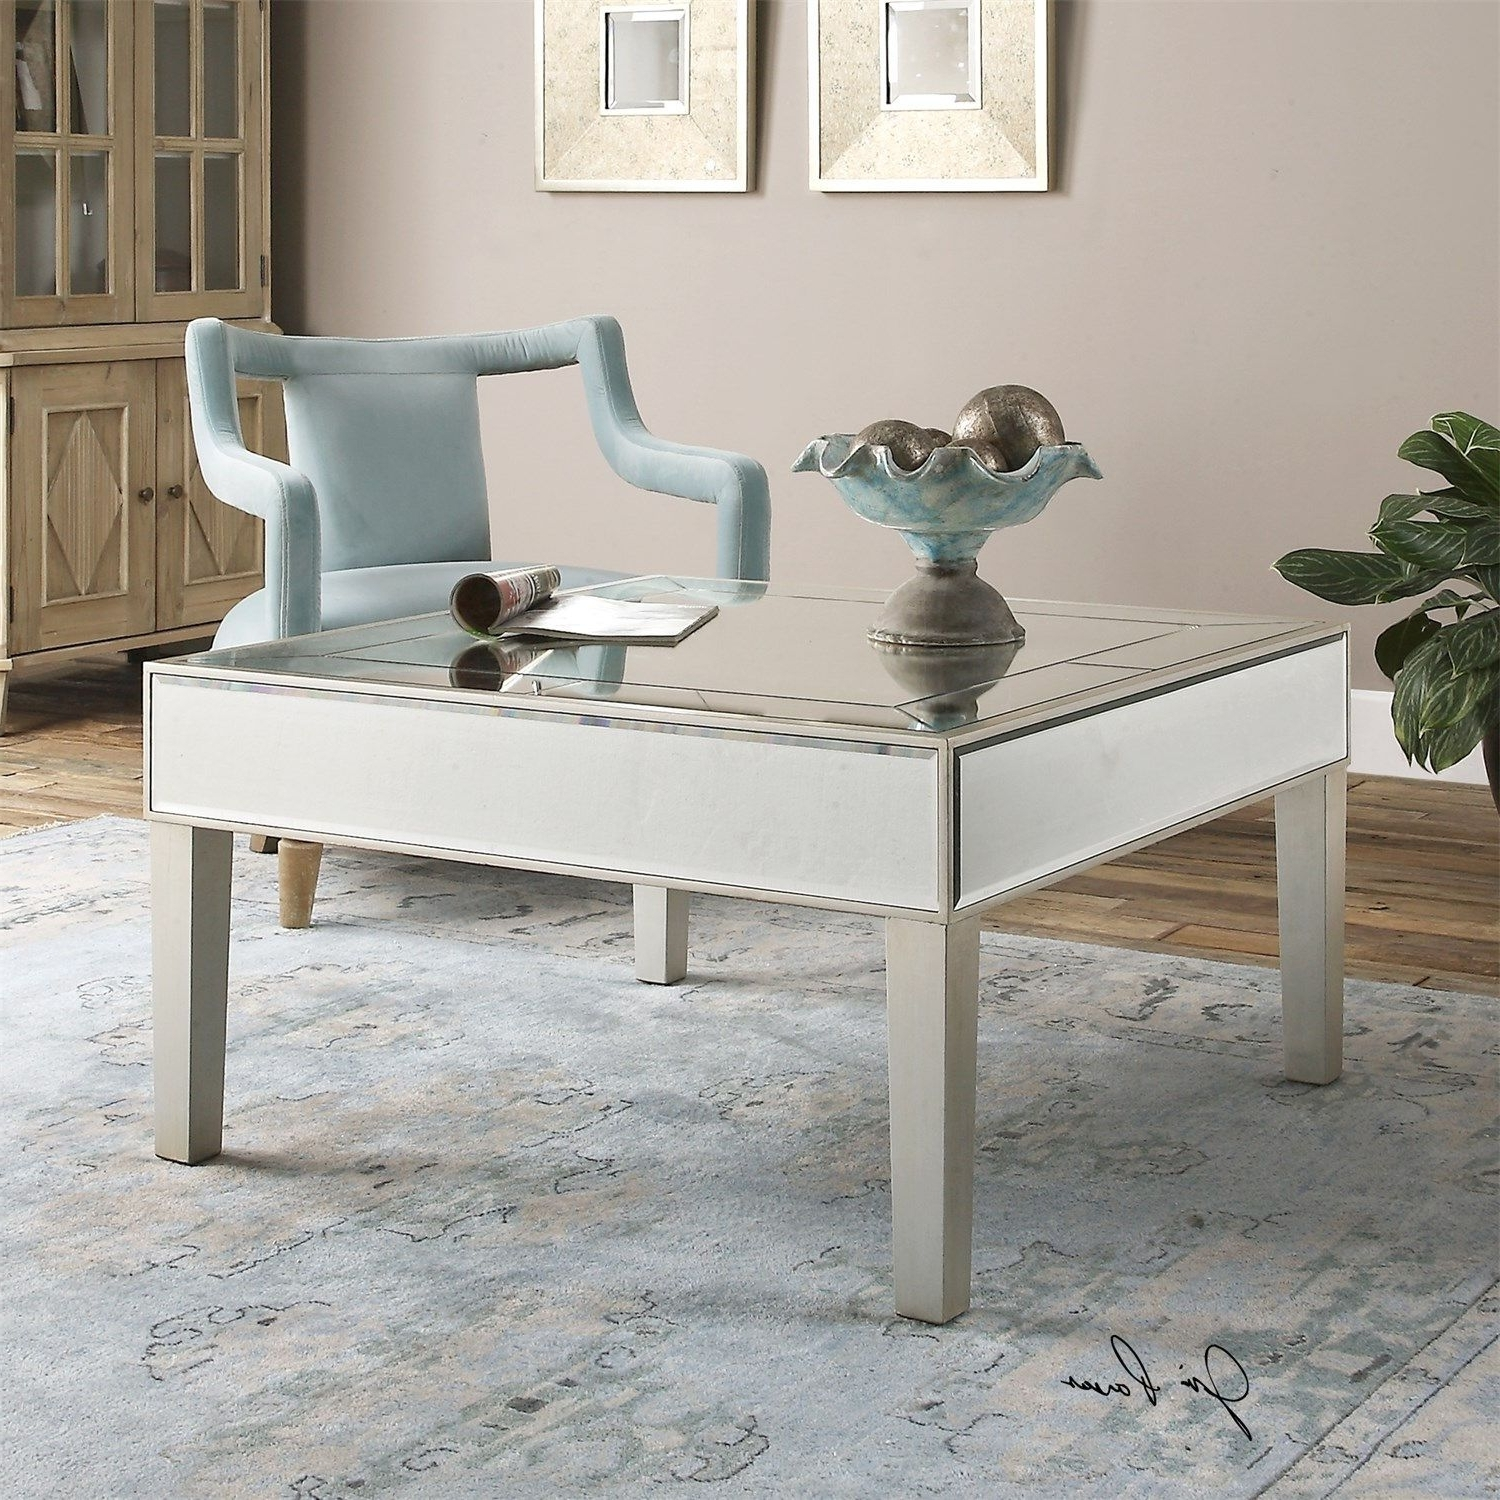 Uttermost 24522 Enrikos Mirrored Coffee Table (View 9 of 20)